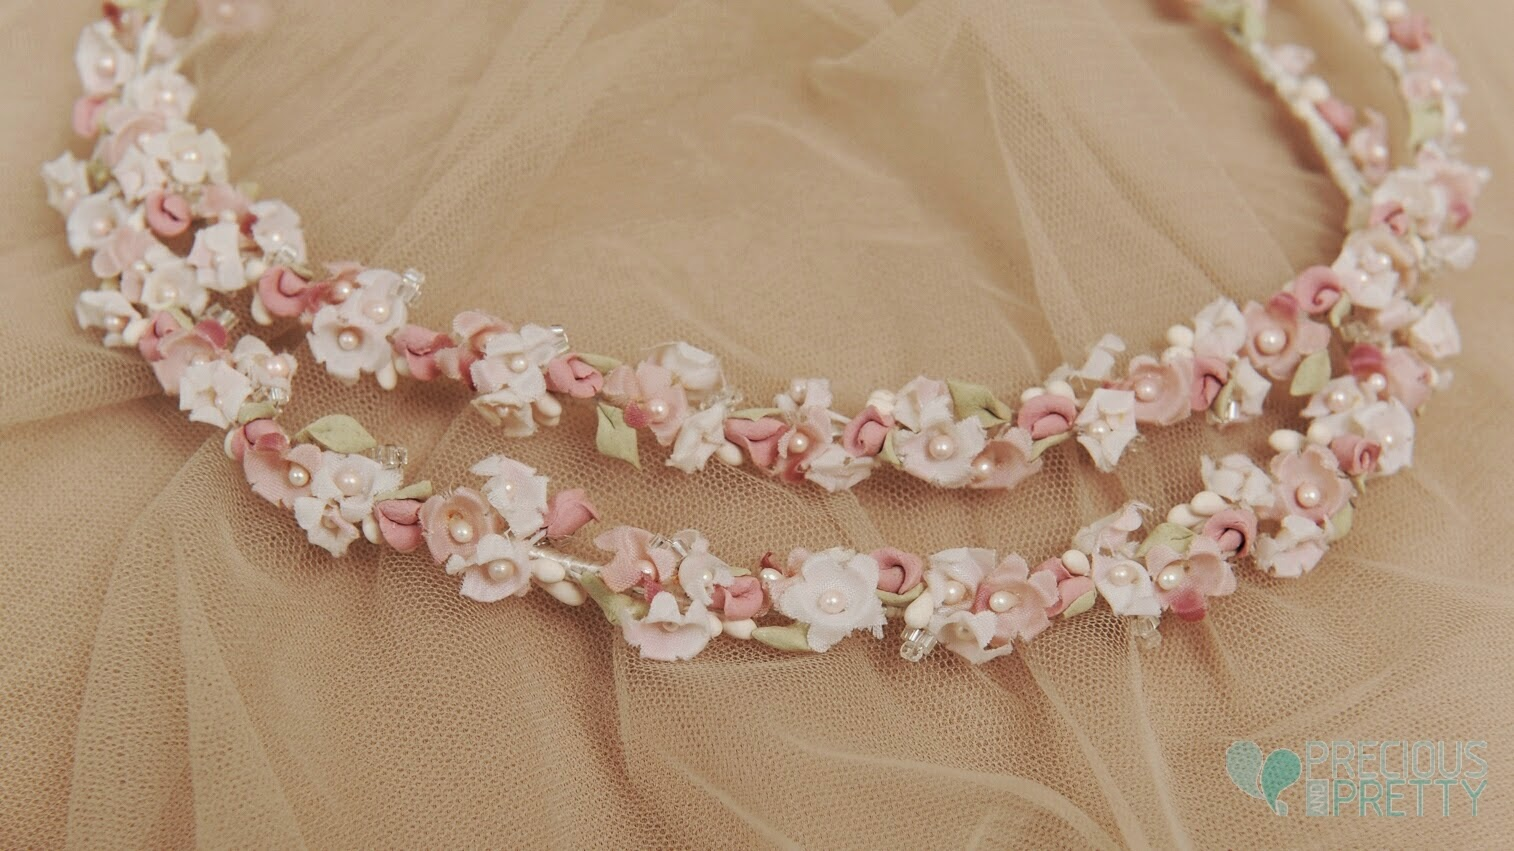 Bridal crowns with flowers